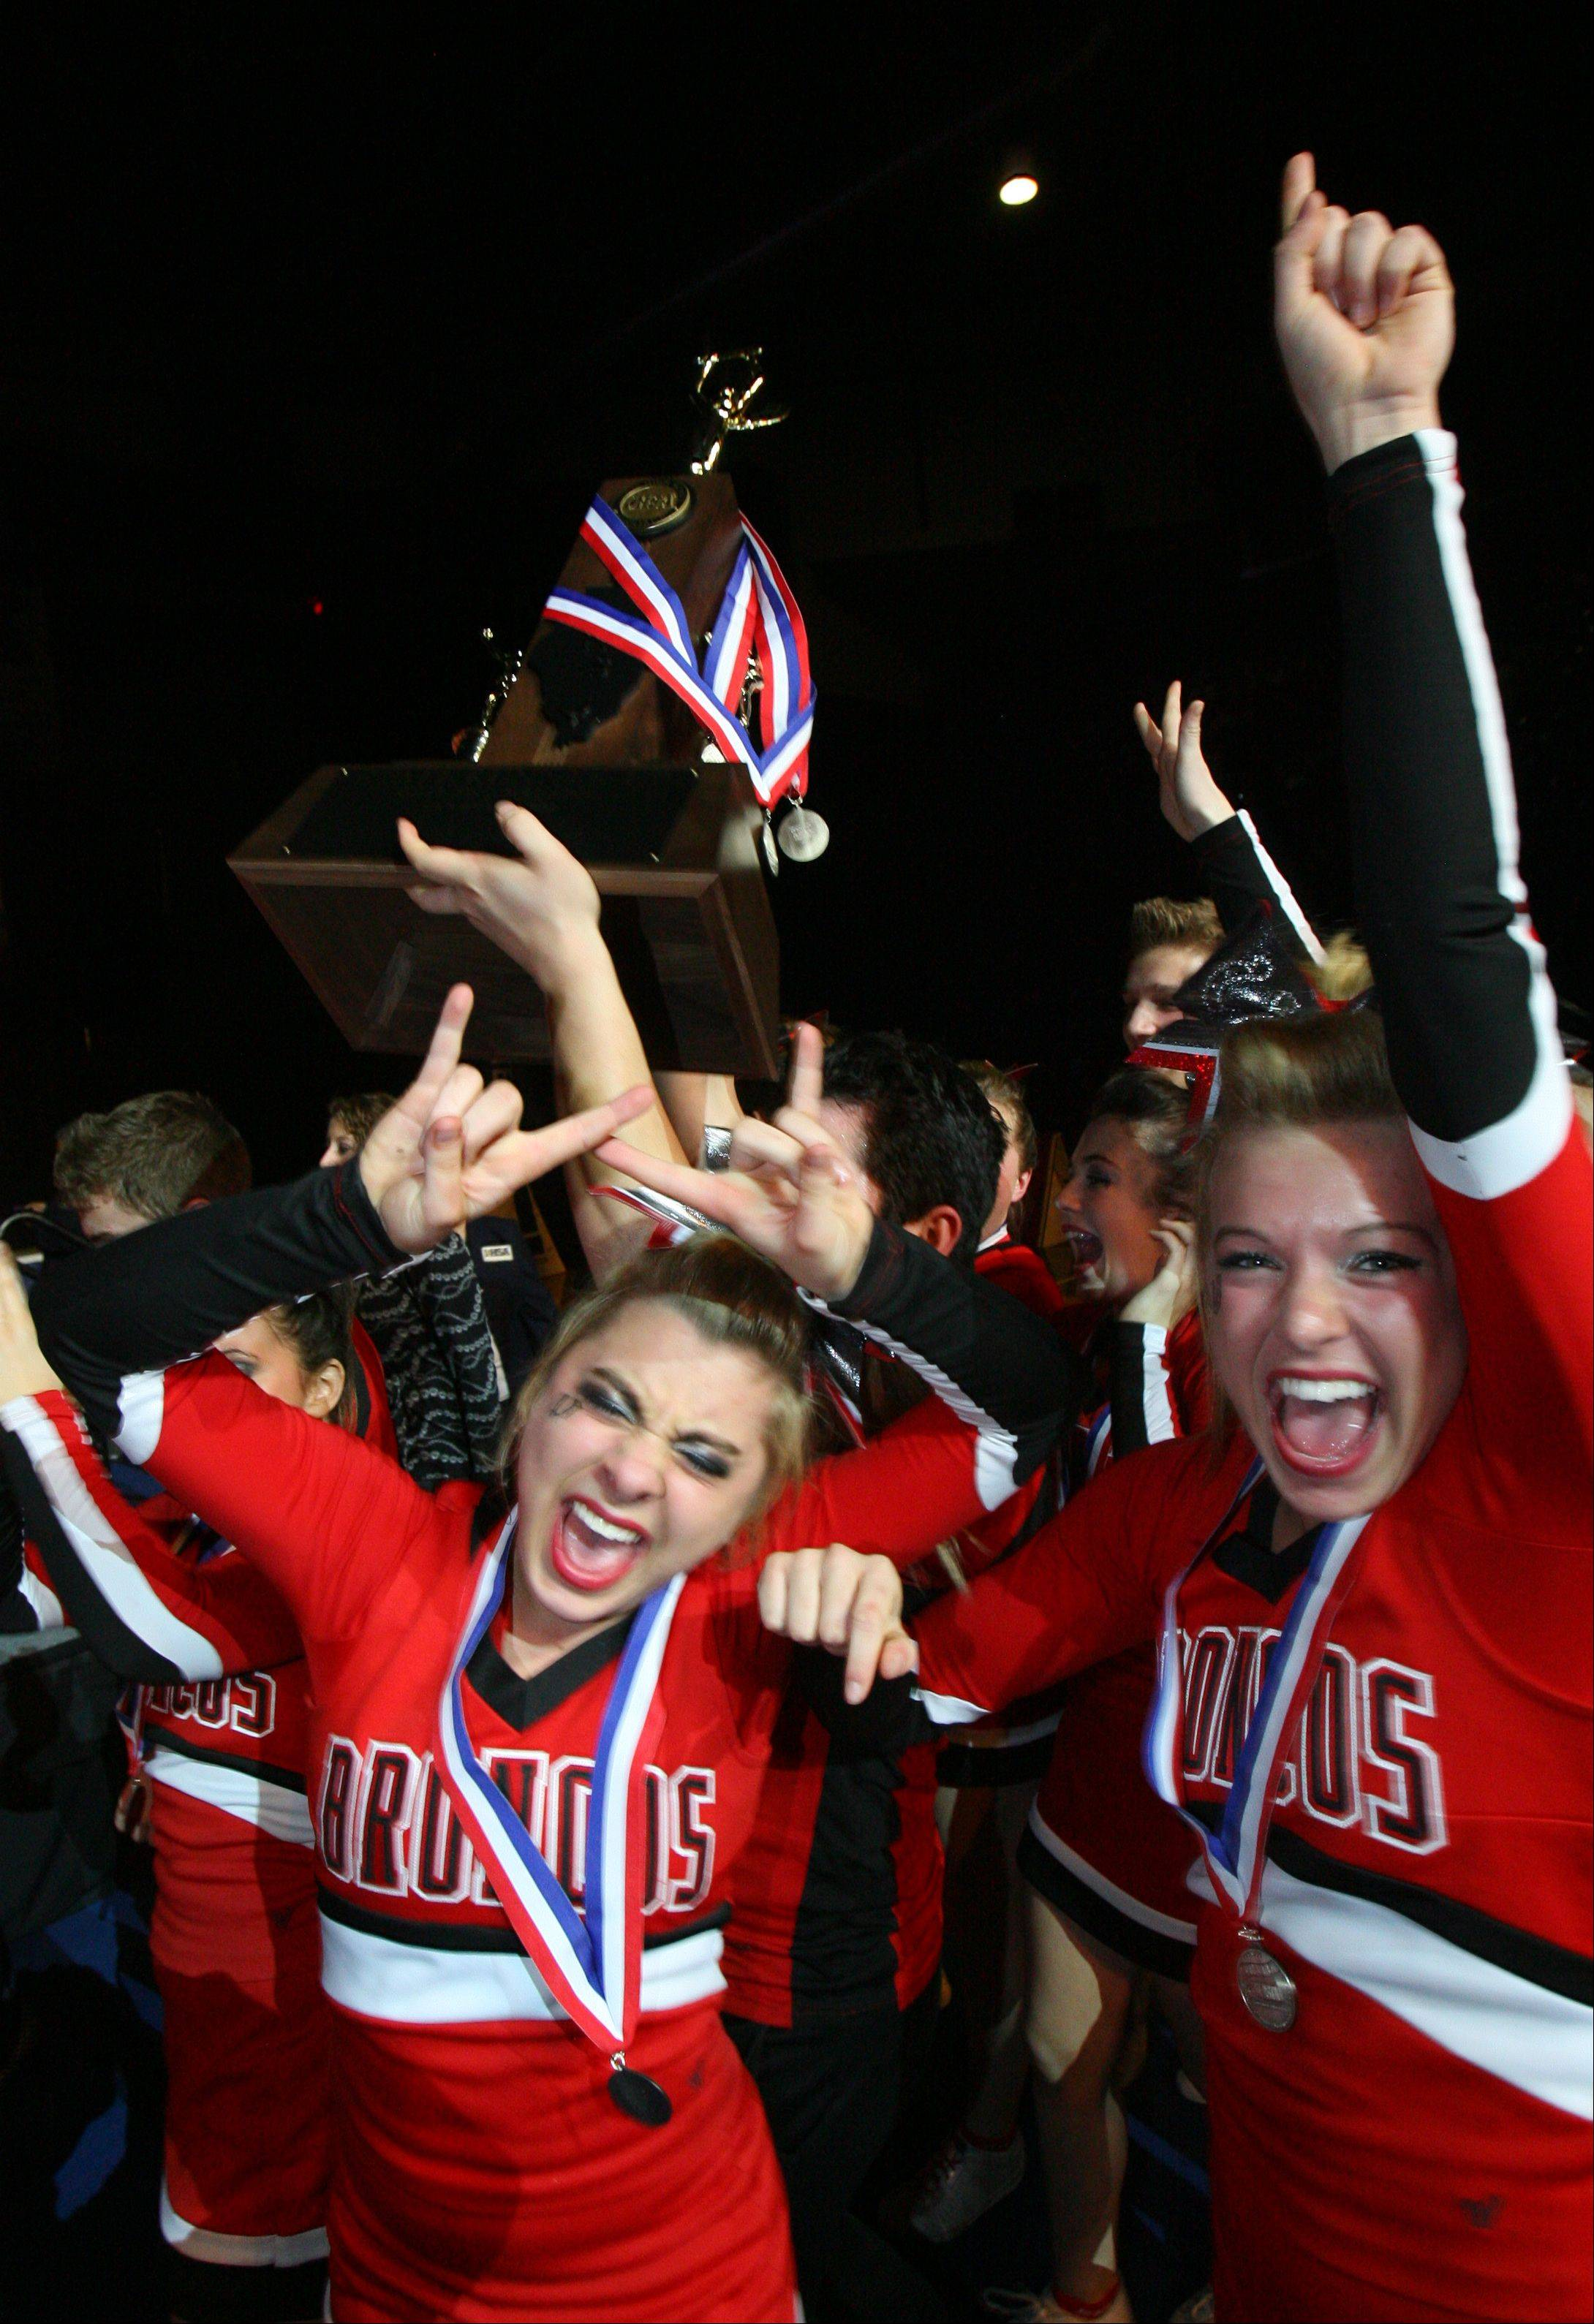 Barrington High School's large co-ed team celebrate after winning 2nd place in the IHSA Competitive Cheerleading finals on Saturday, Feb. 2 at the U.S. Cellular Coliseum in Bloomington.